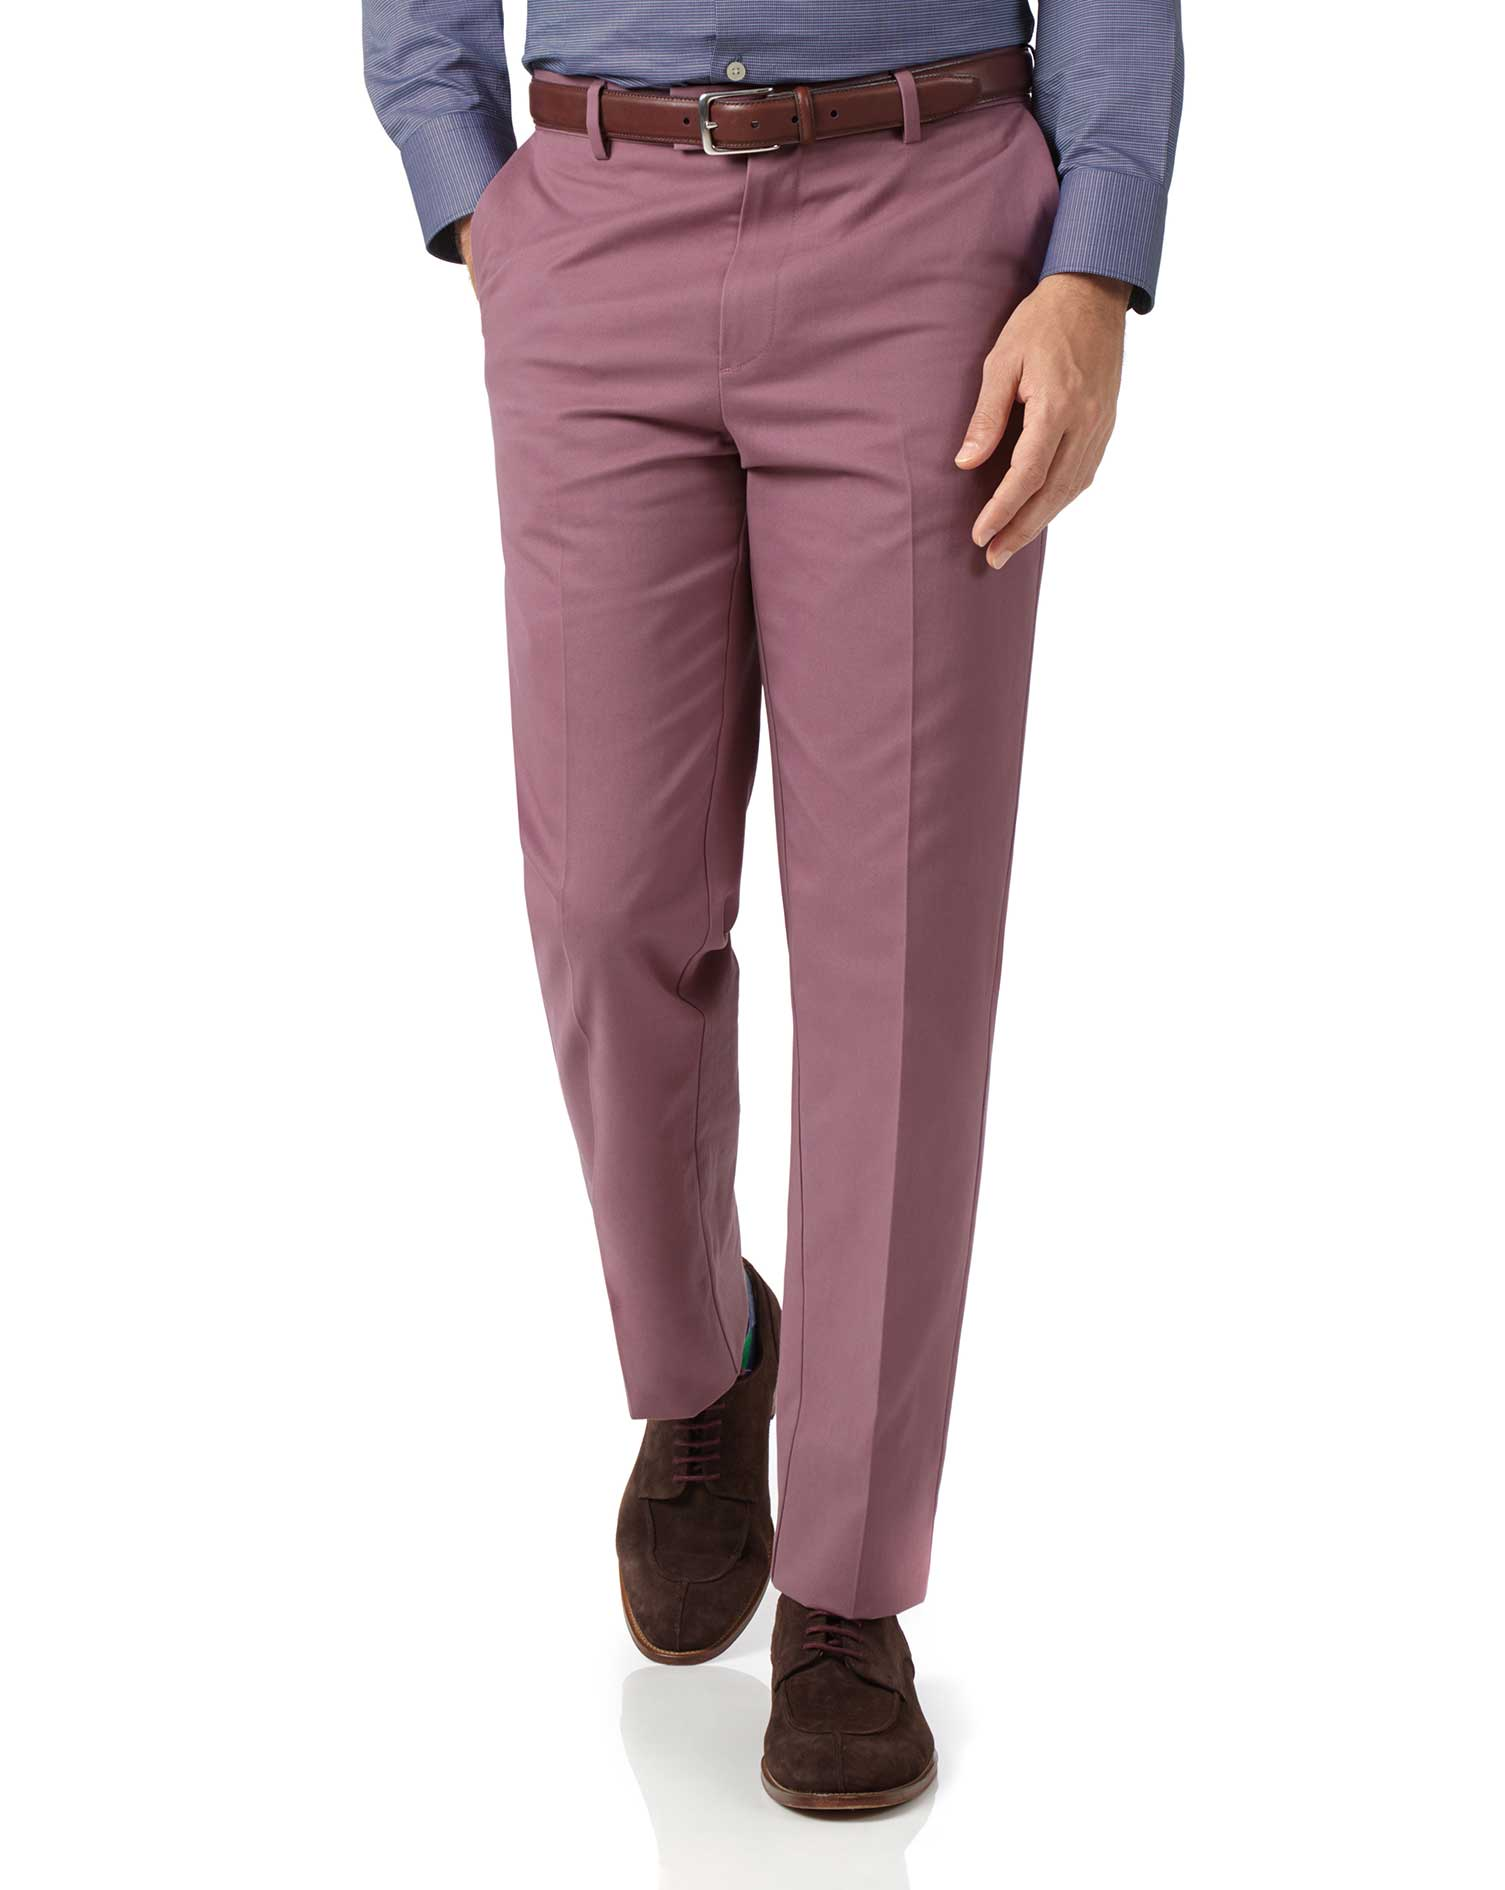 Light Pink Classic Fit Flat Front Non-Iron Cotton Chino Trousers Size W36 L29 by Charles Tyrwhitt